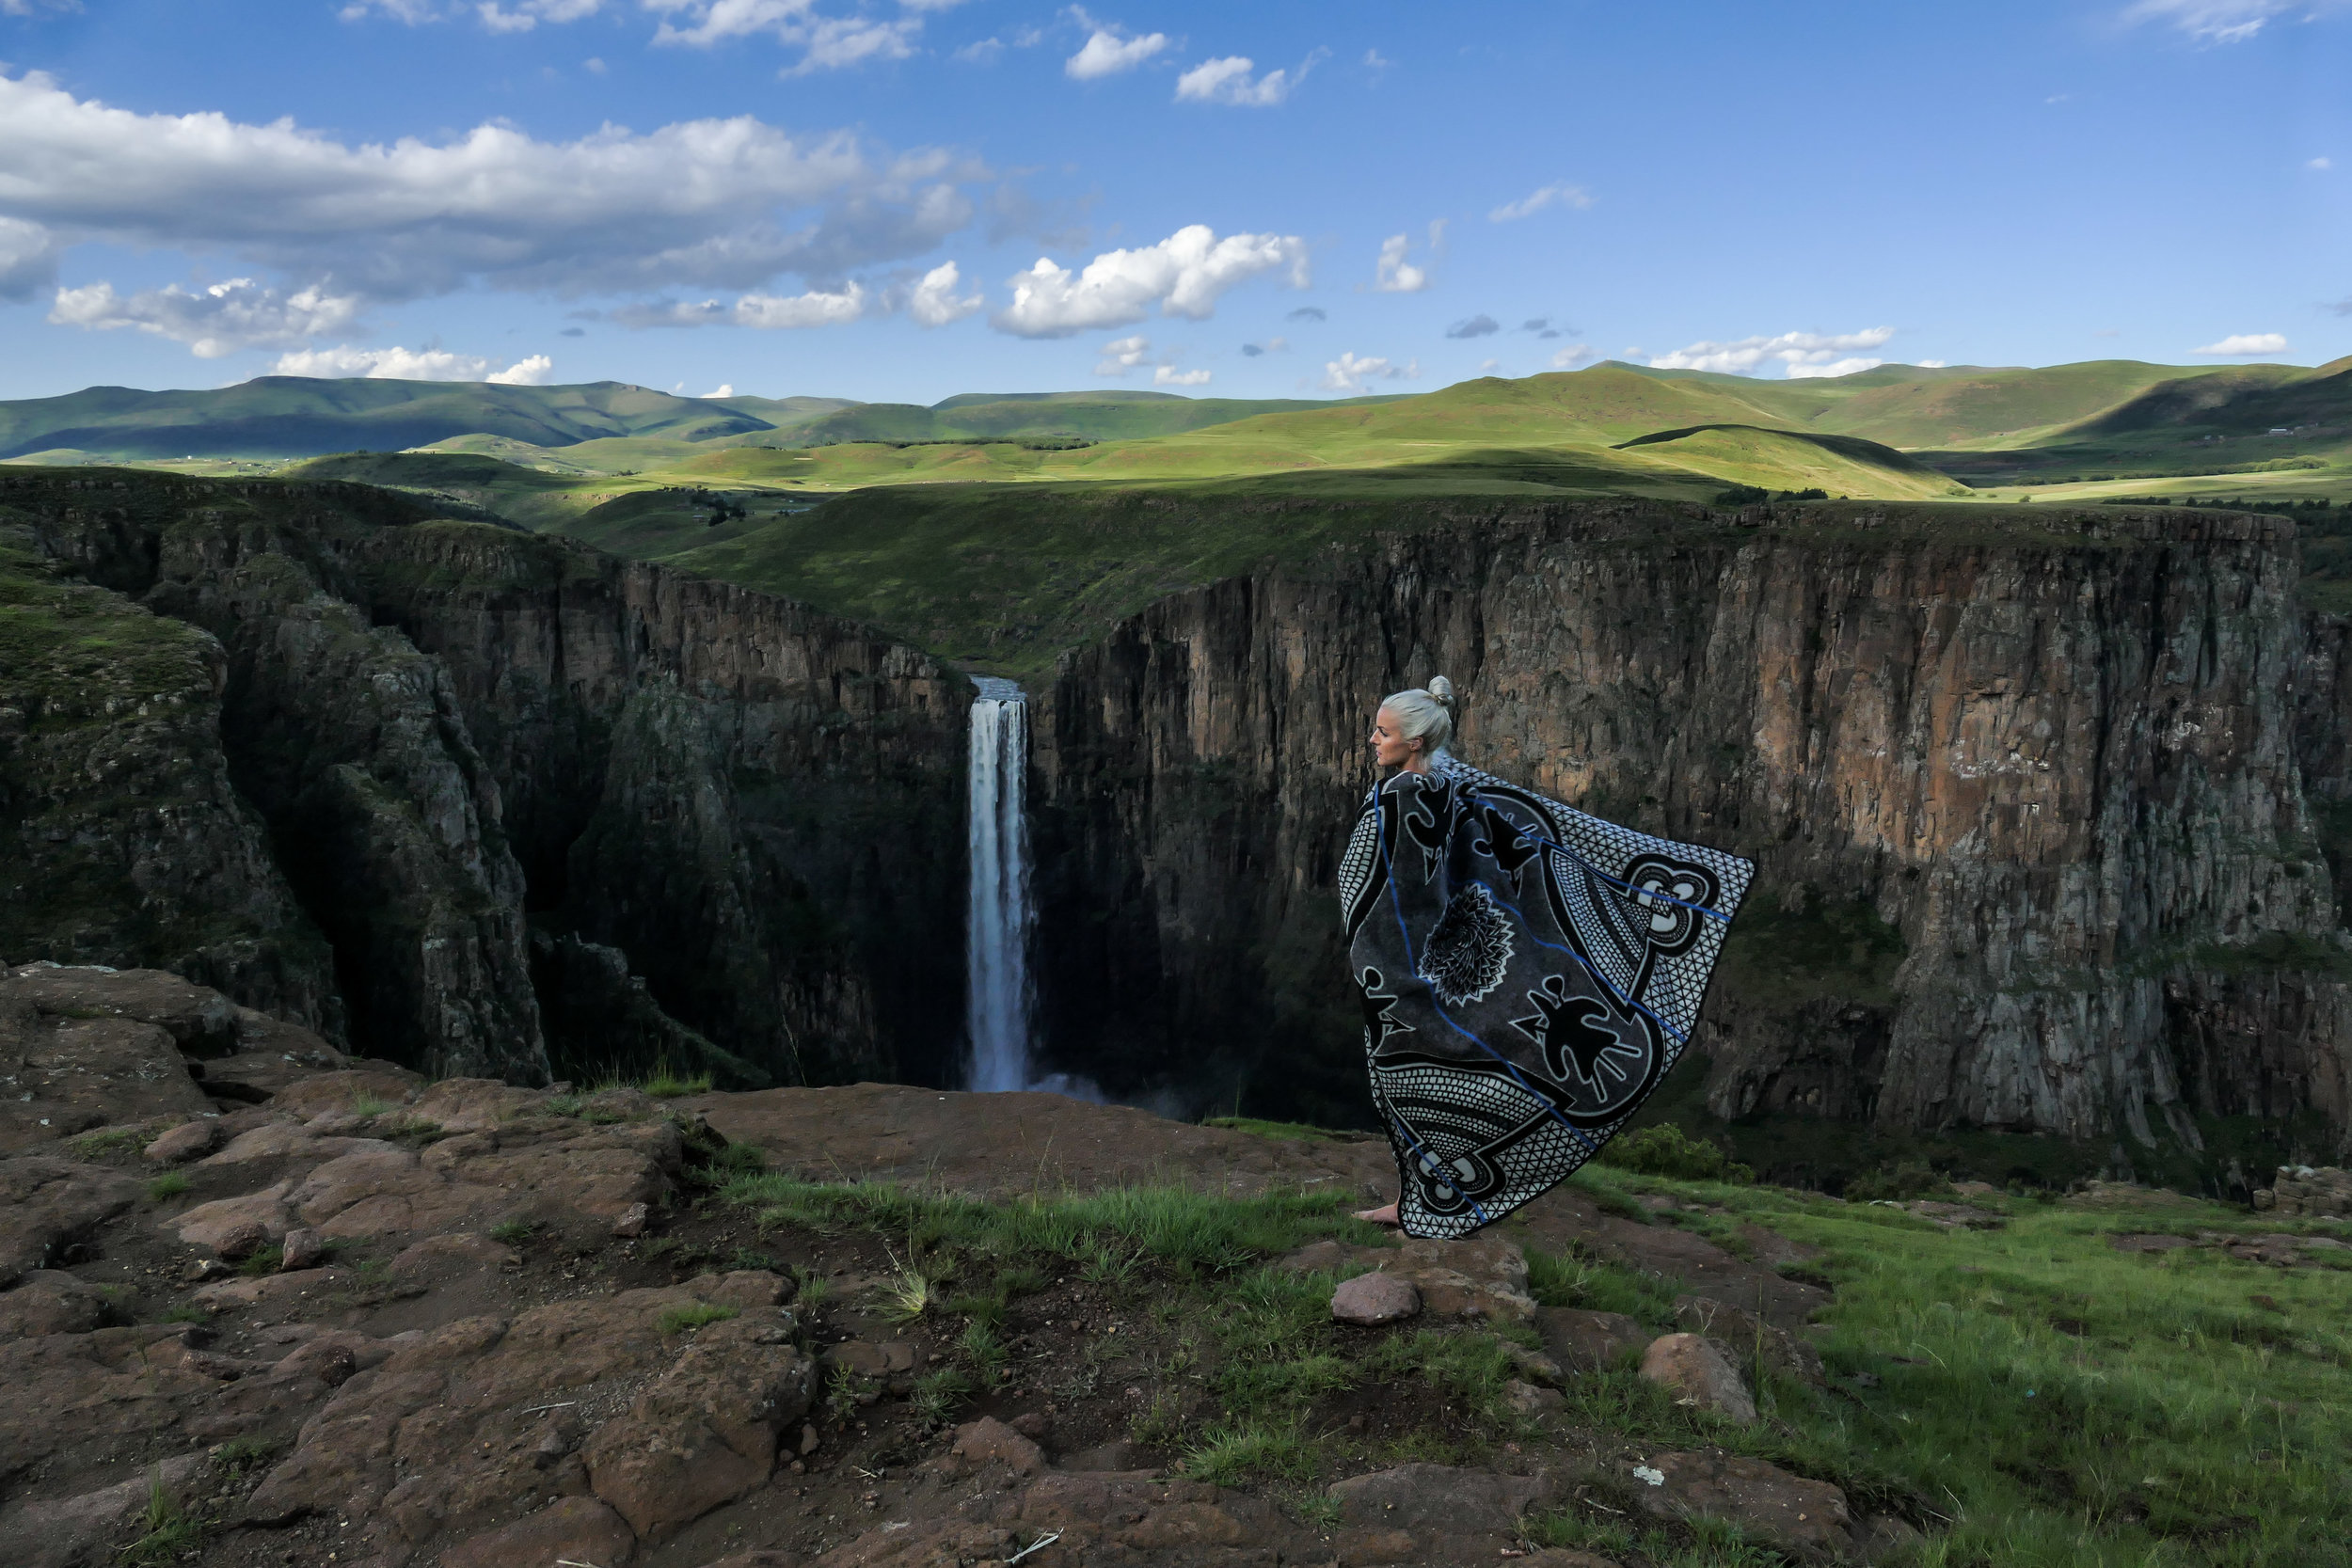 Adrienne McDermott at Maletsunyane Falls in Semonkong, Lesotho wearing a traditional Kharetsa (Spiral Aloe)pattern Basotho Blanket. Learn about purchasing a blanket at the end of this story. Image by Andrew McDermott @heyheyAndrew